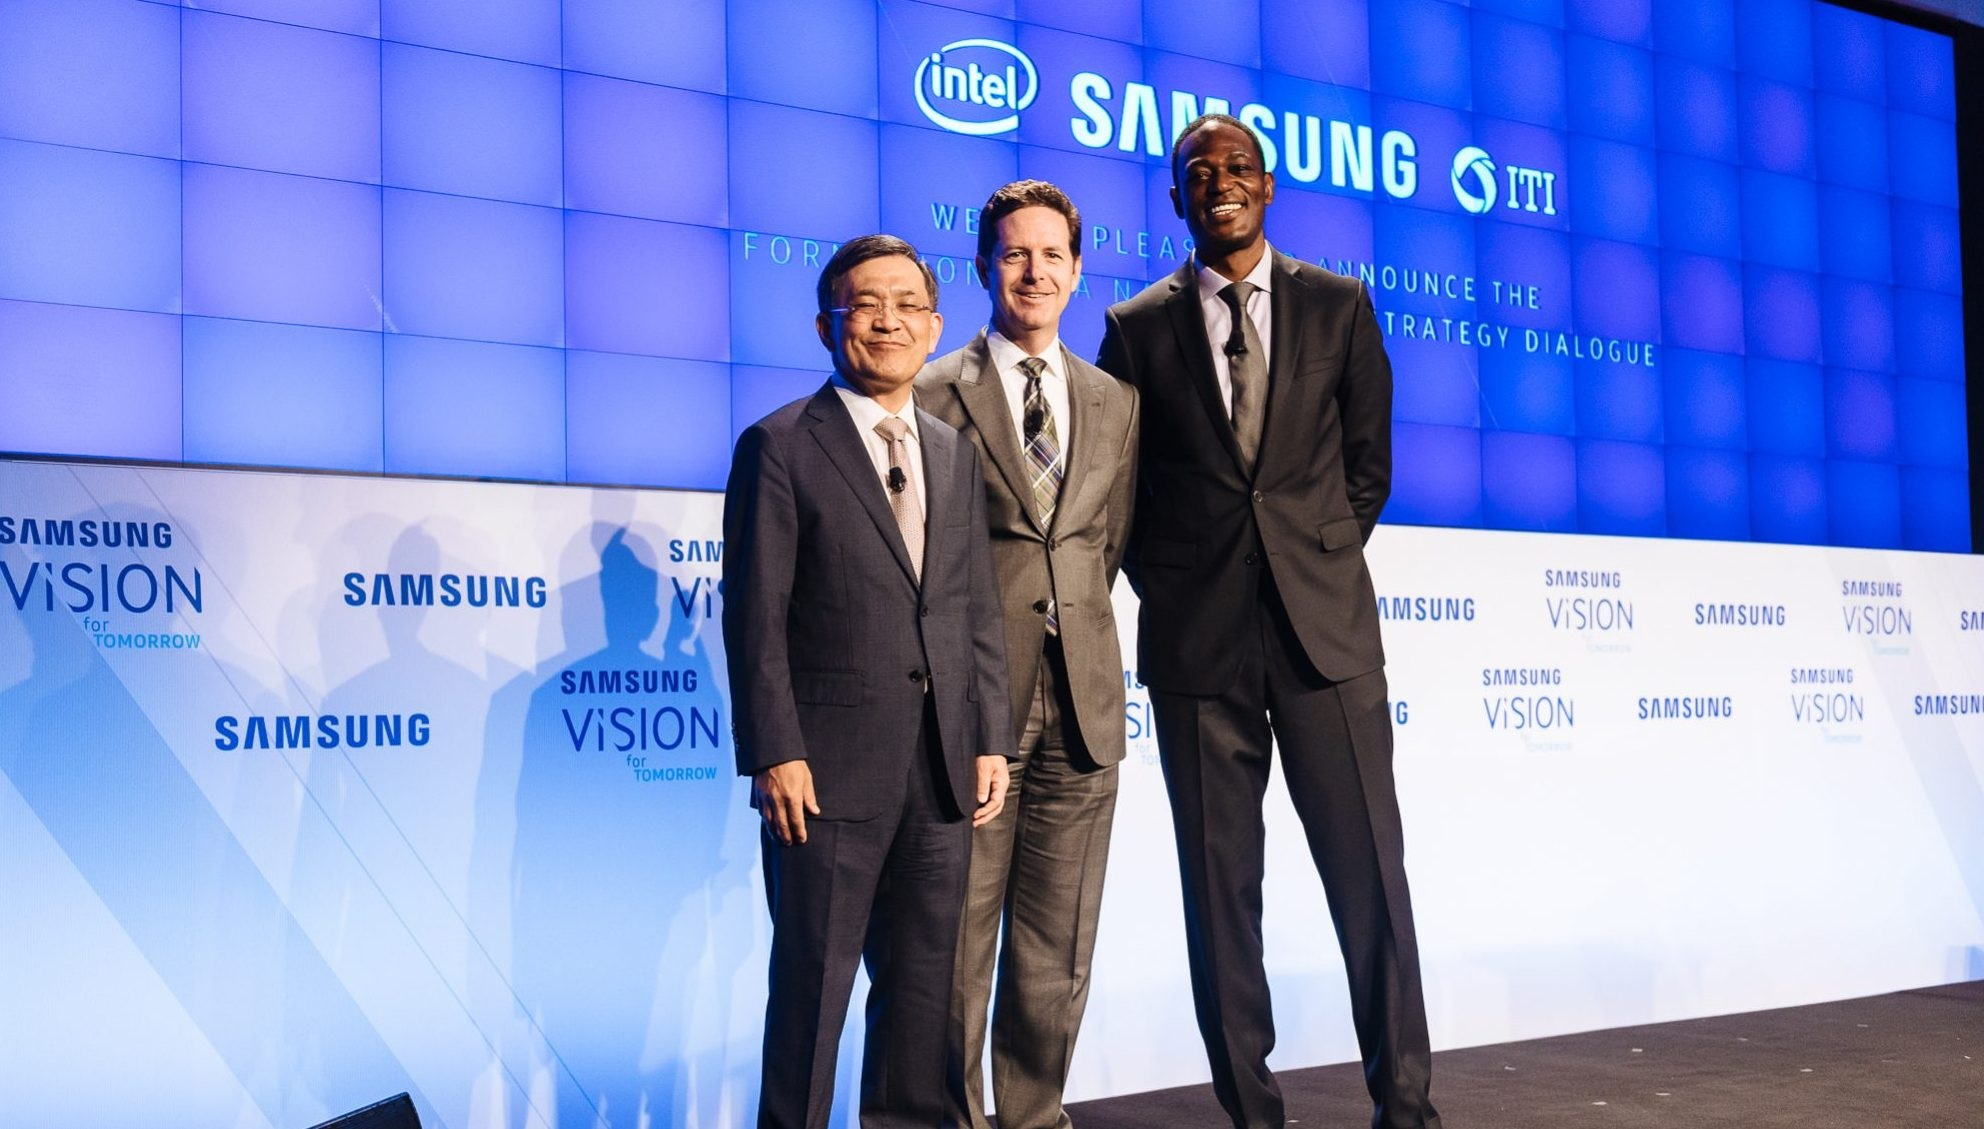 Intel and Samsung Form National IoT Strategy Dialogue